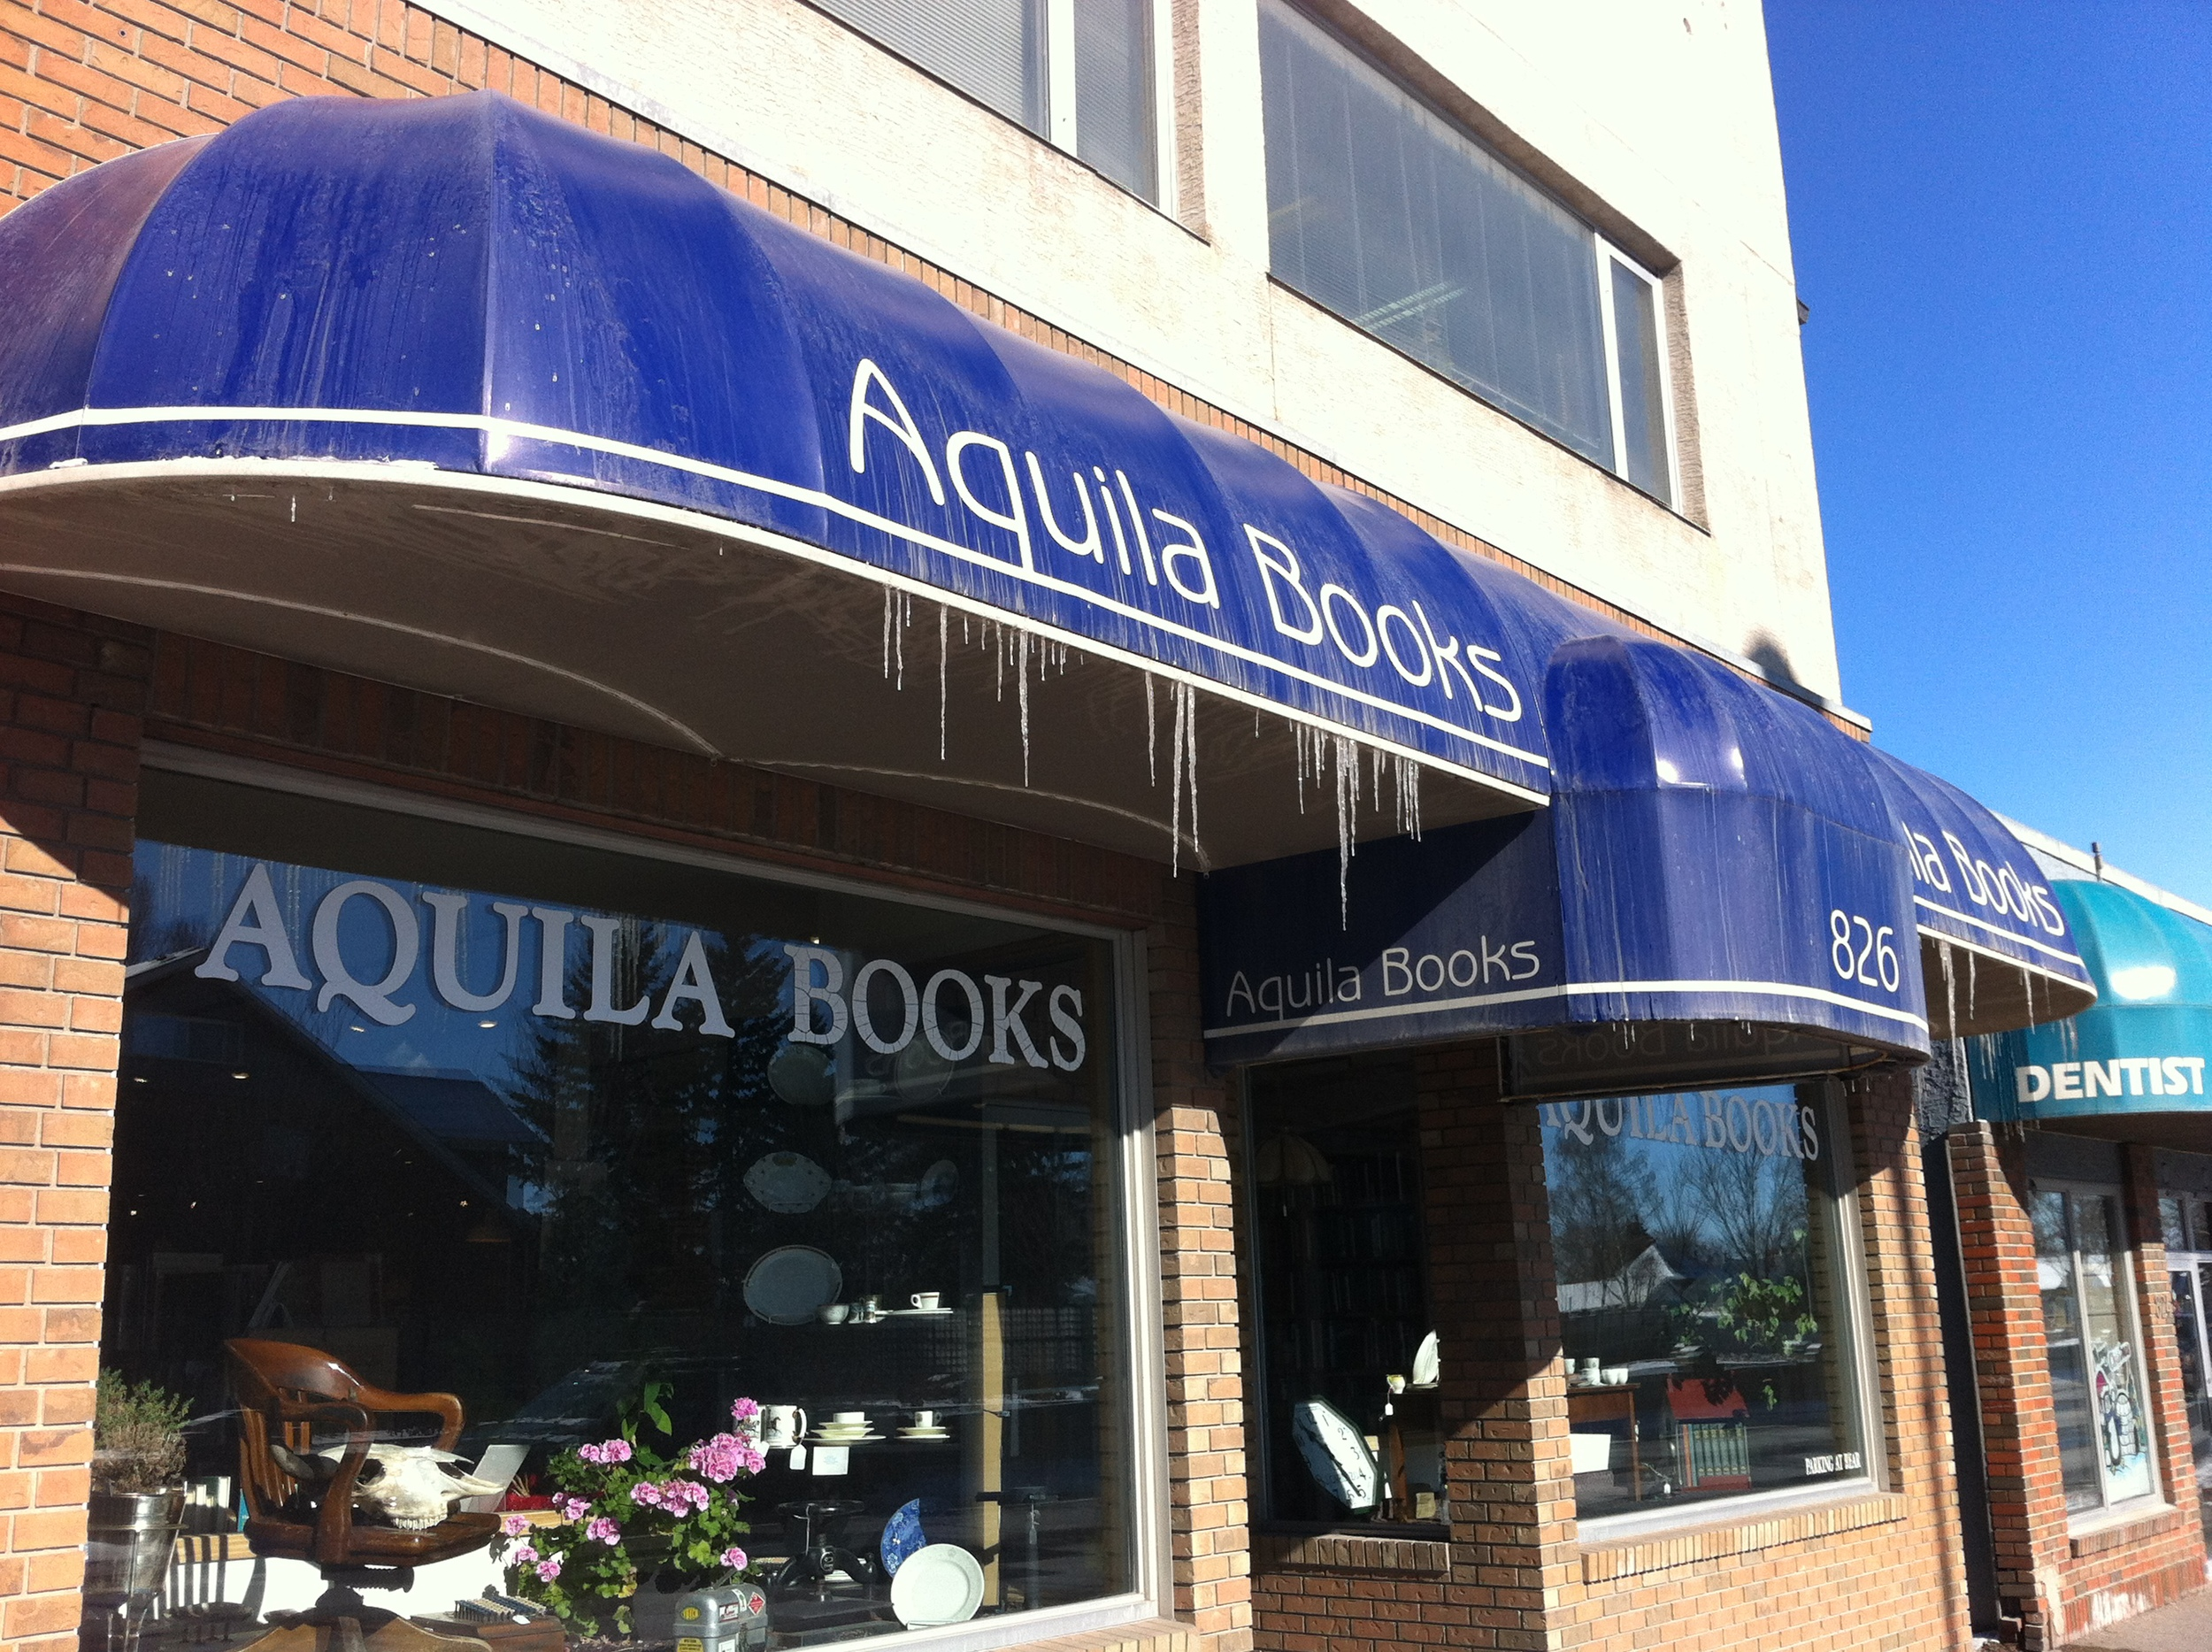 Aquila Books is the opposite of Phoenix Comics. It appeals to the intellectual geeks who love history.  Perhaps we should call 16th Ave N Geek Street!